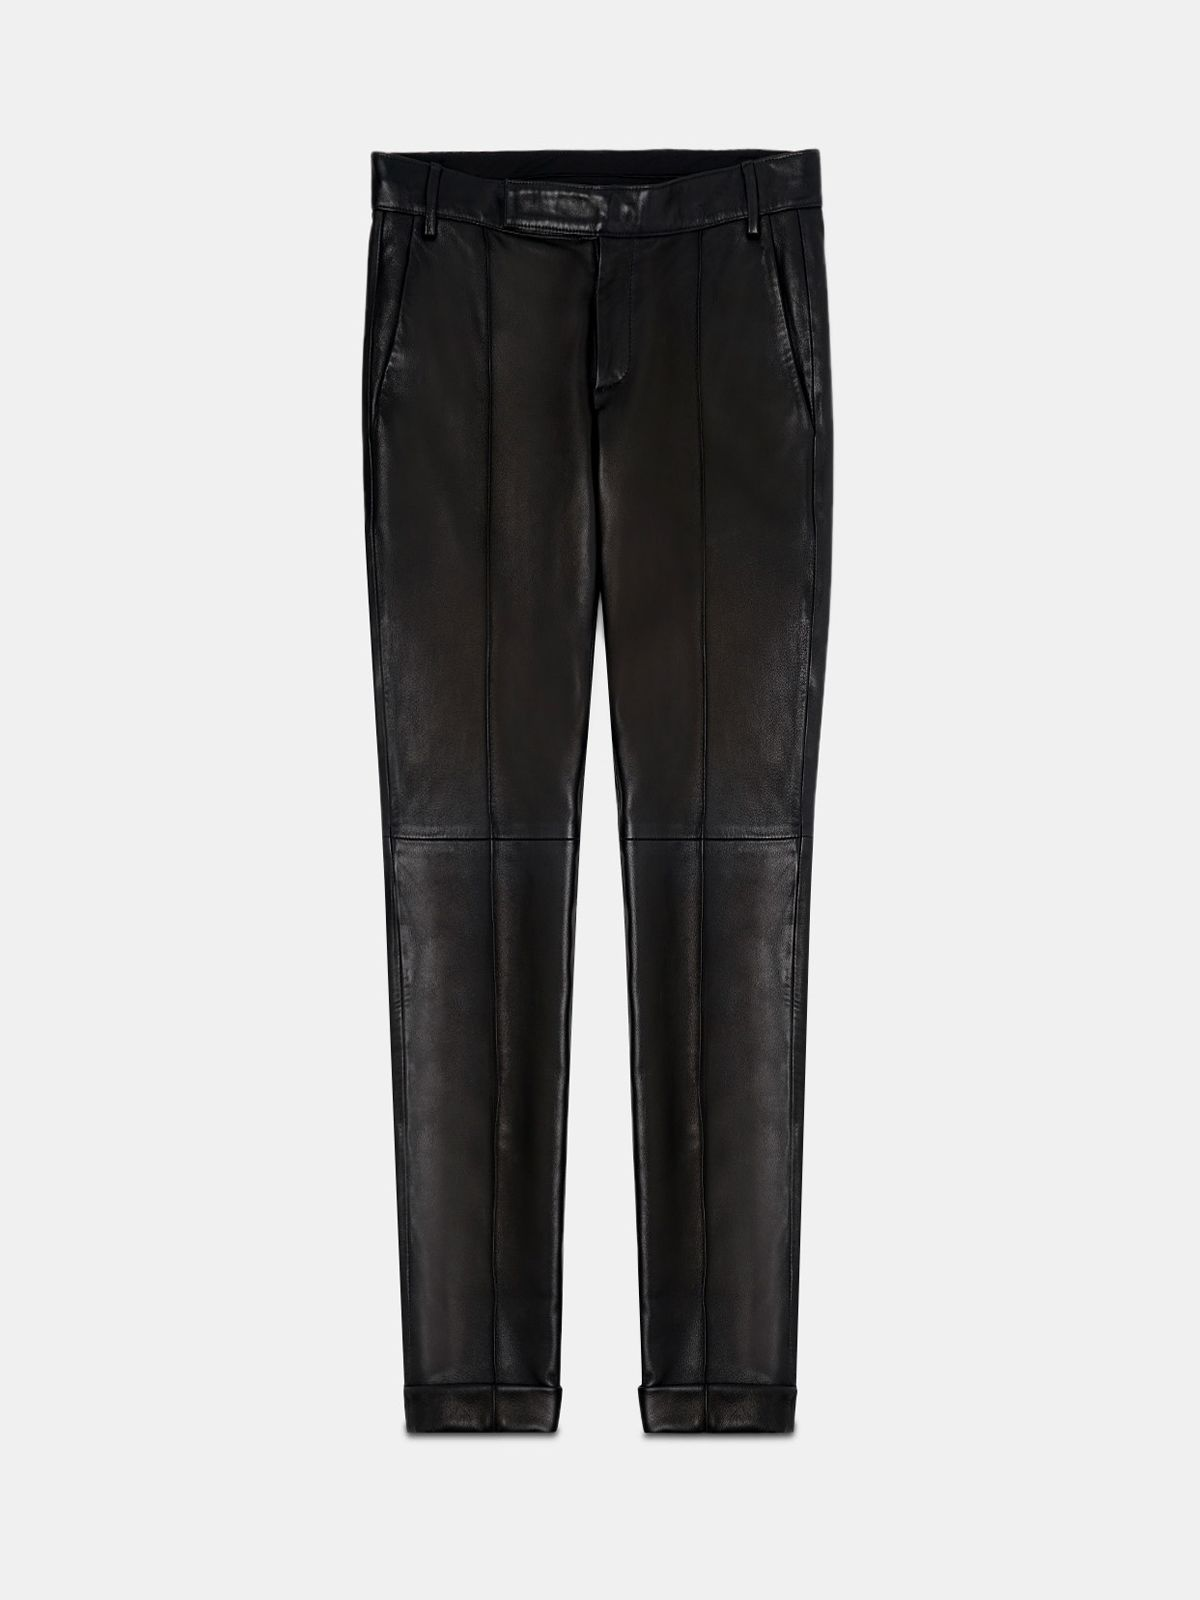 Golden Goose - Black Agathe trousers in nappa leather   in